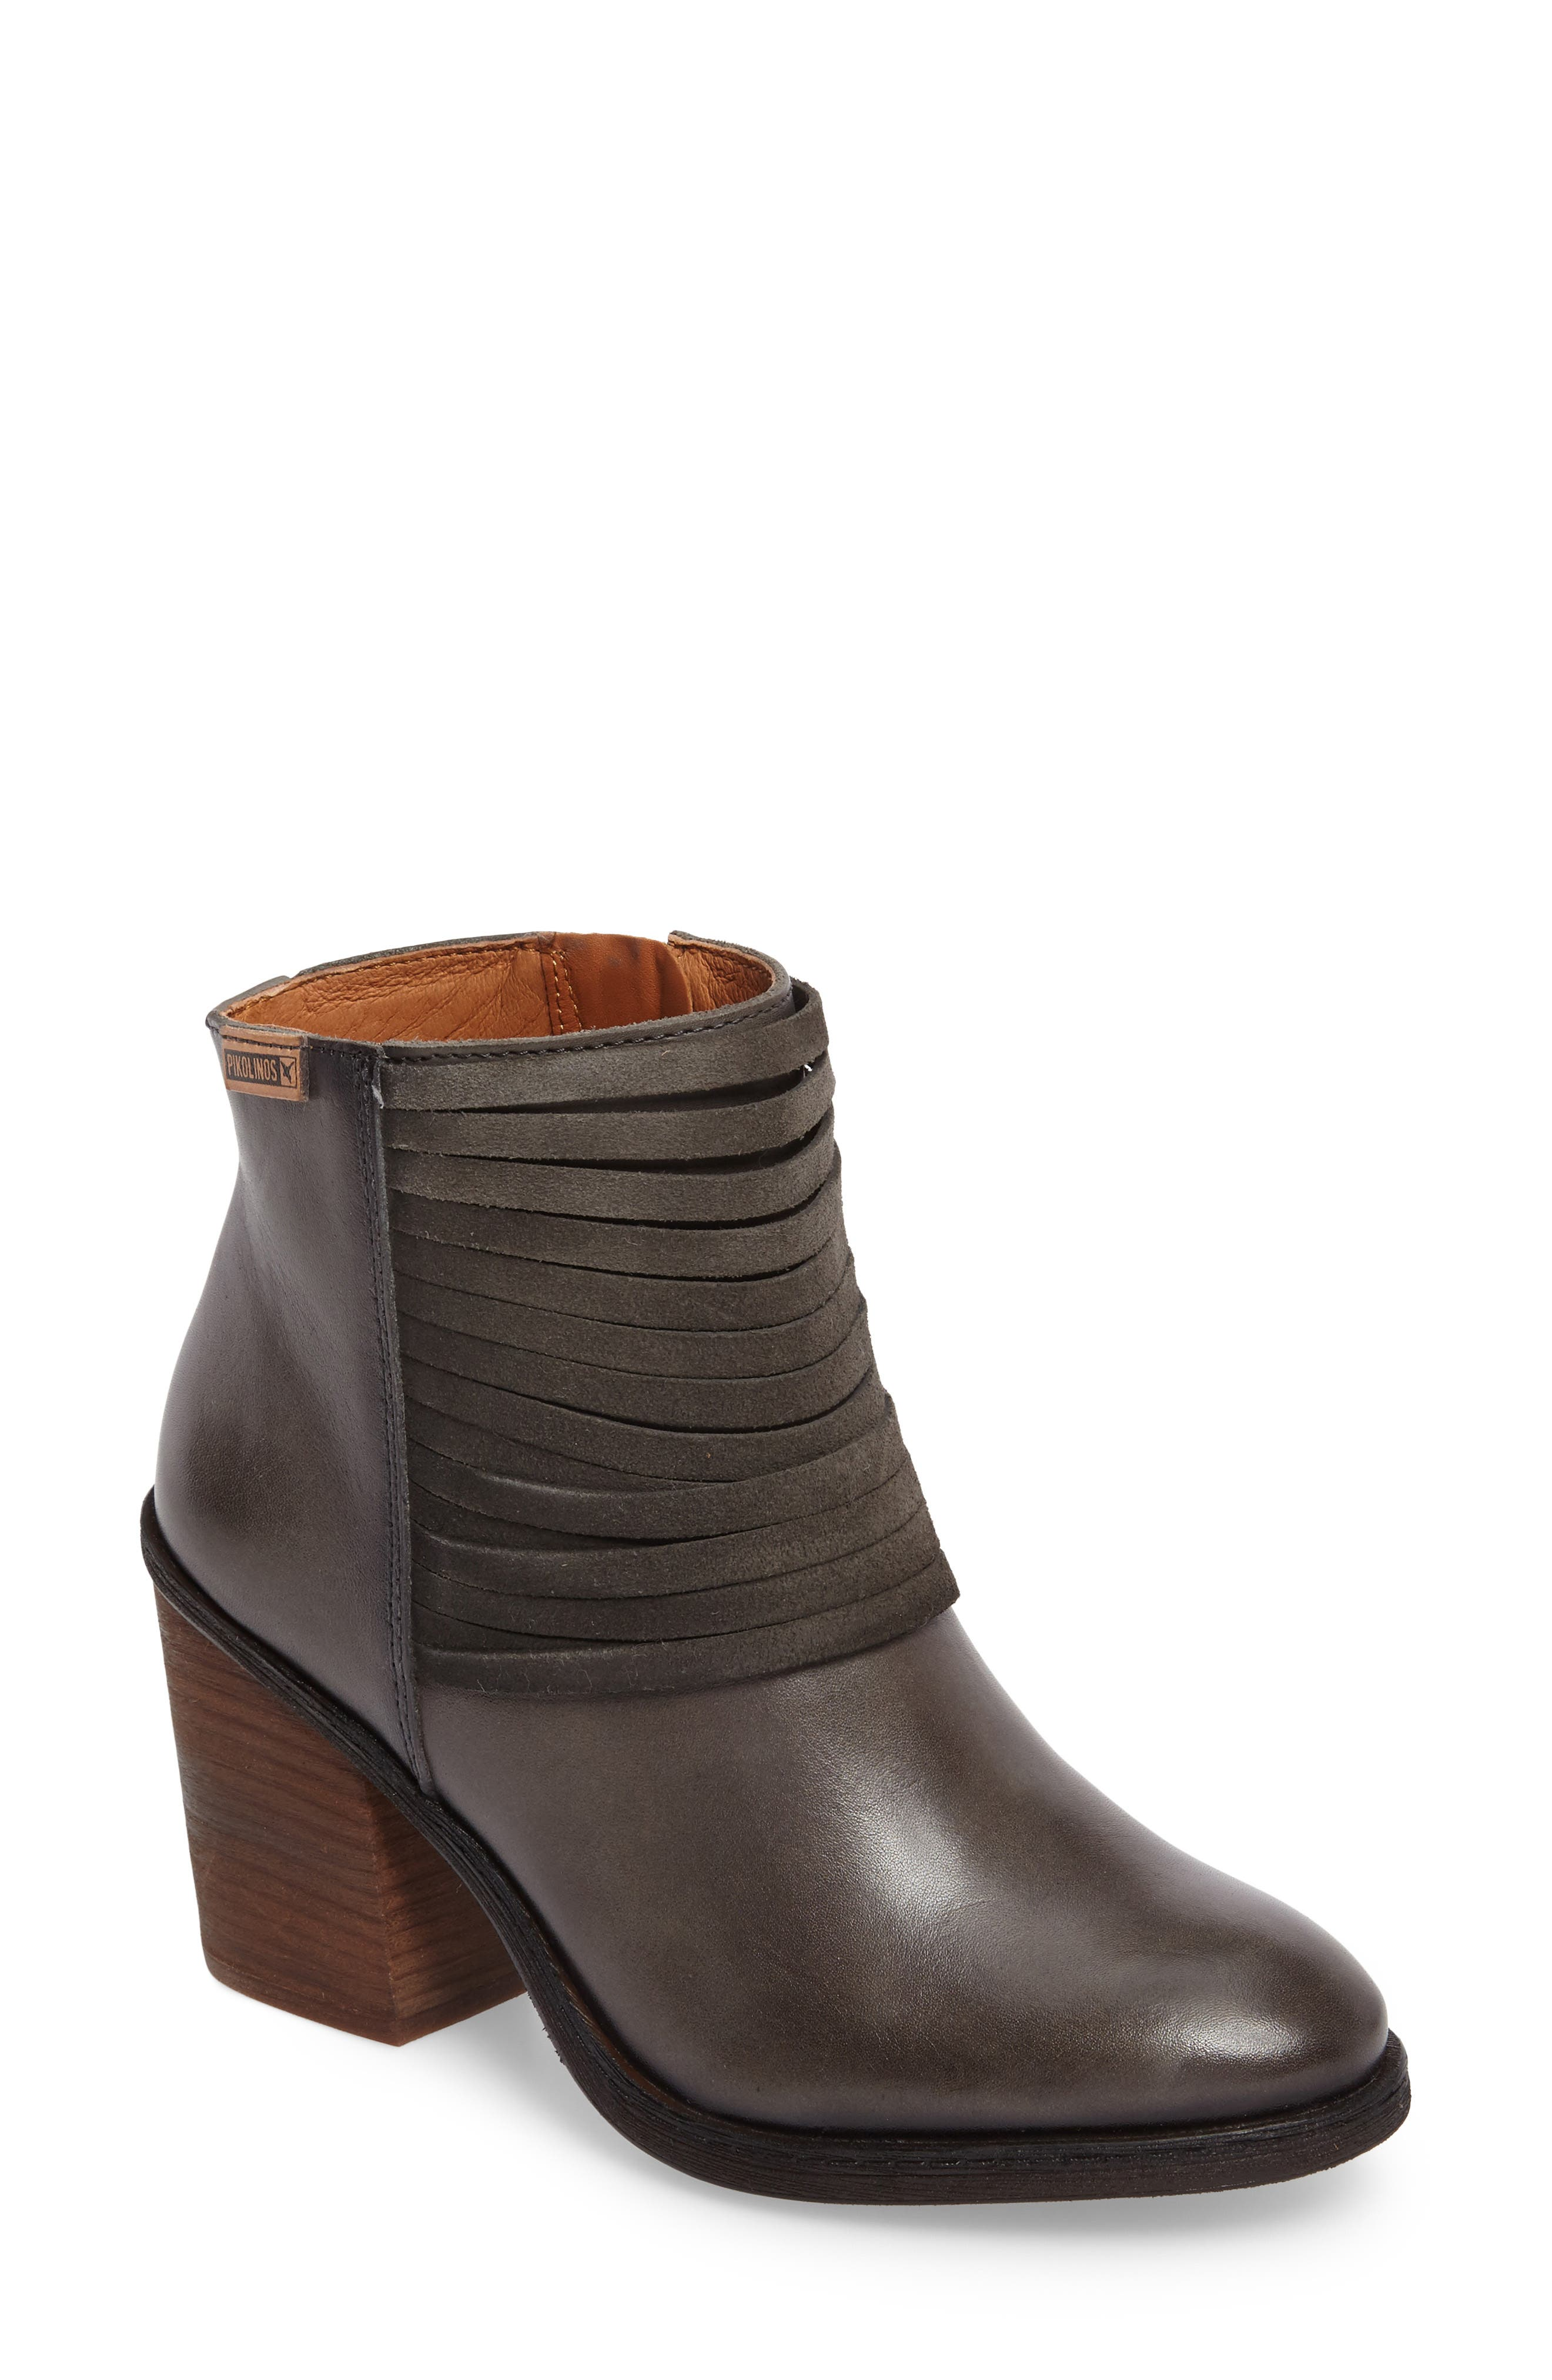 Alicante Bootie,                         Main,                         color, 020